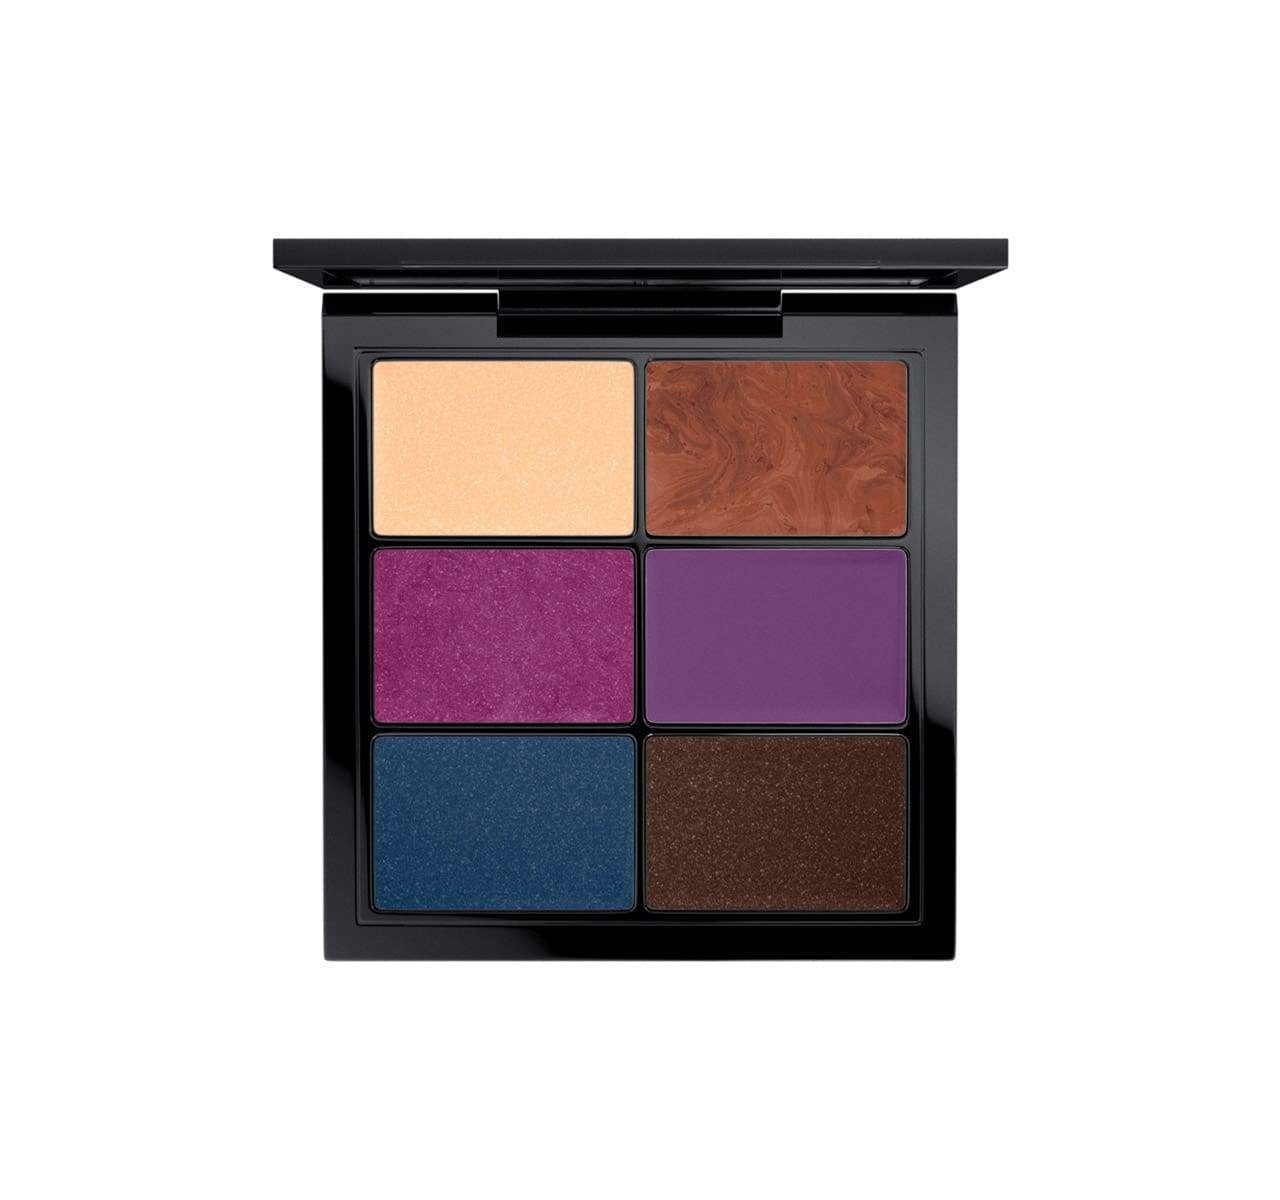 M.A.C Makeup Art Cosmetics Creme Shadow X 6 in Glamorize Me, Rs 3,600